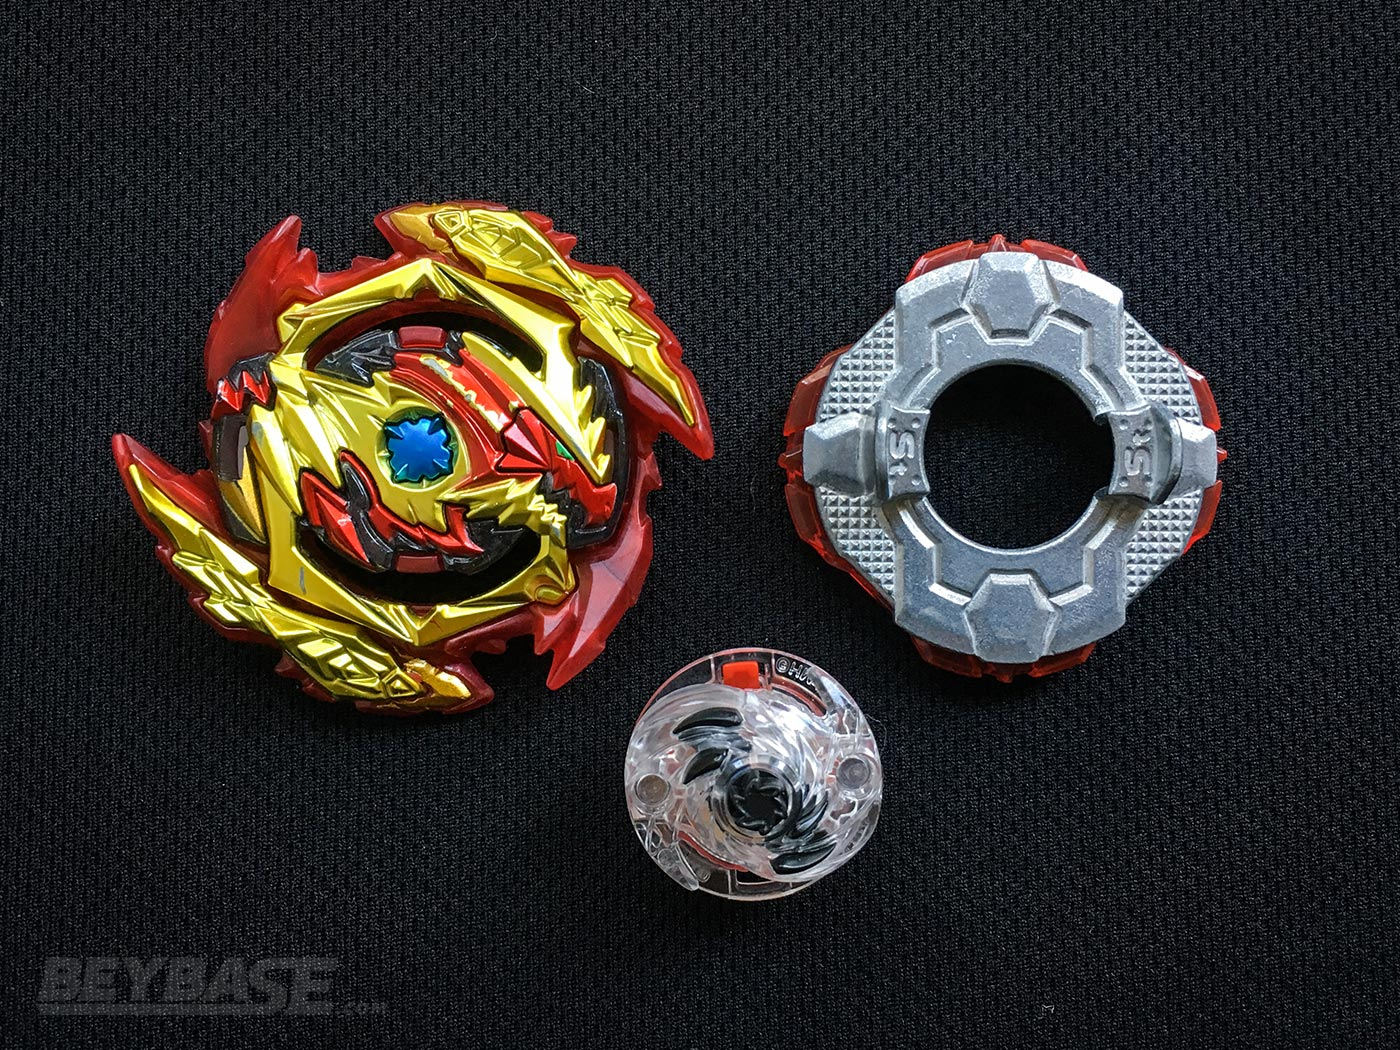 Best Beyblade Burst Combo Zwei Diabolos Sting Jolt Dash – Parts Separated